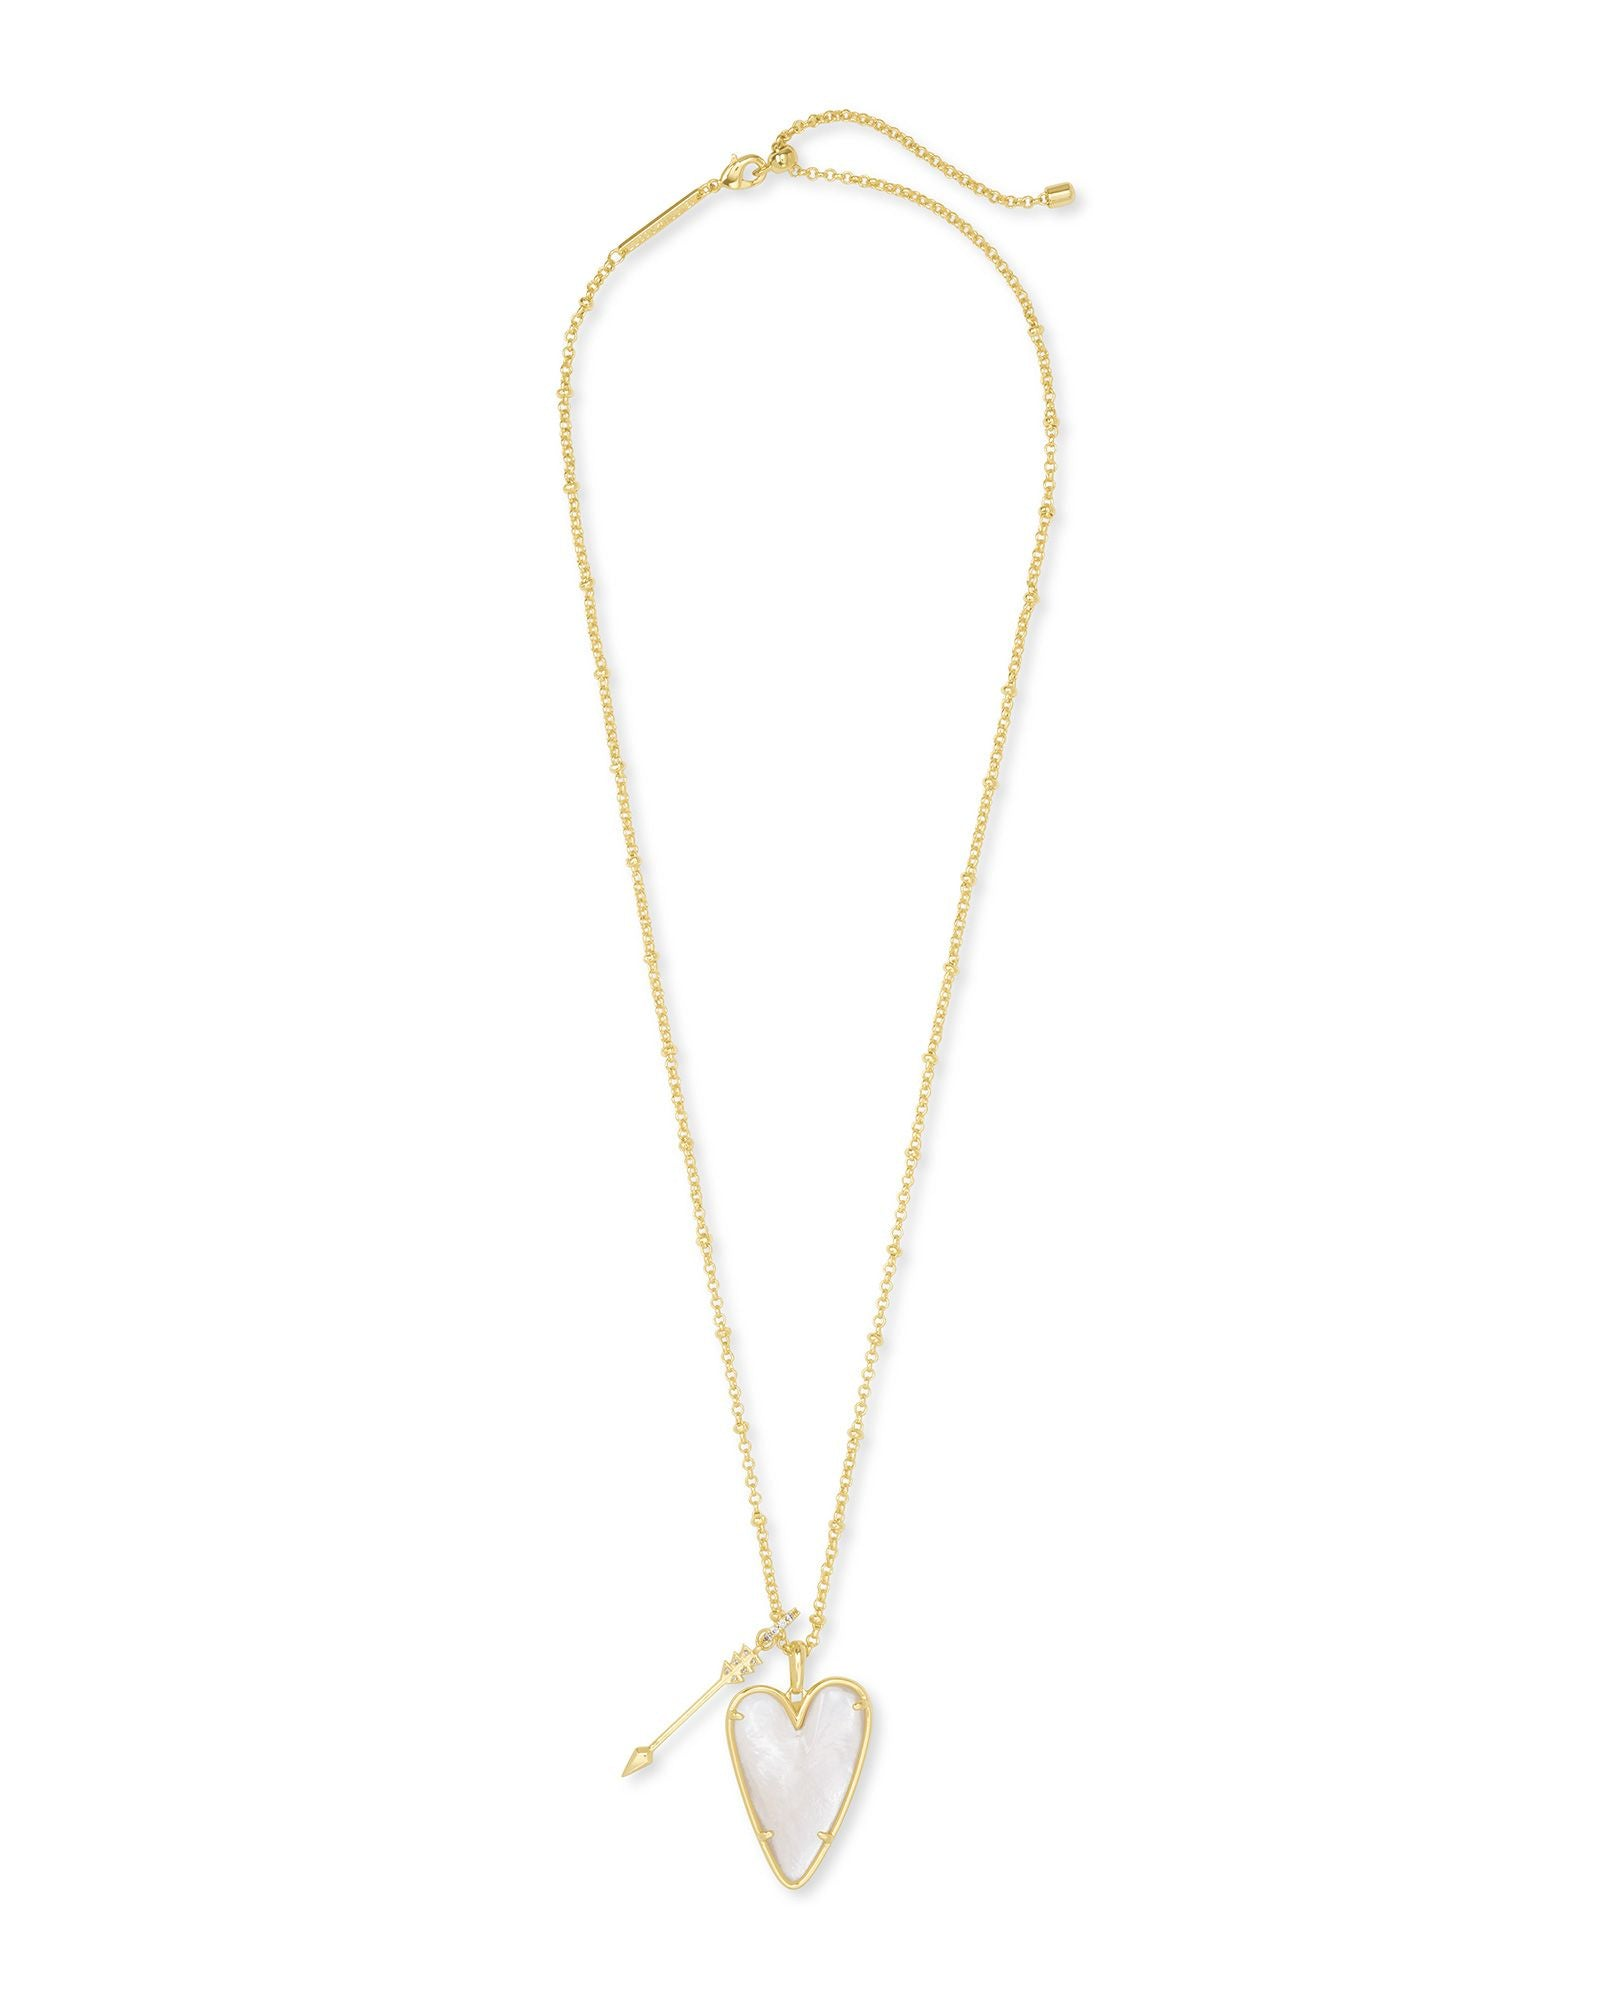 Ansley Long Pendant Necklace in Gold Ivory Mother of Pearl